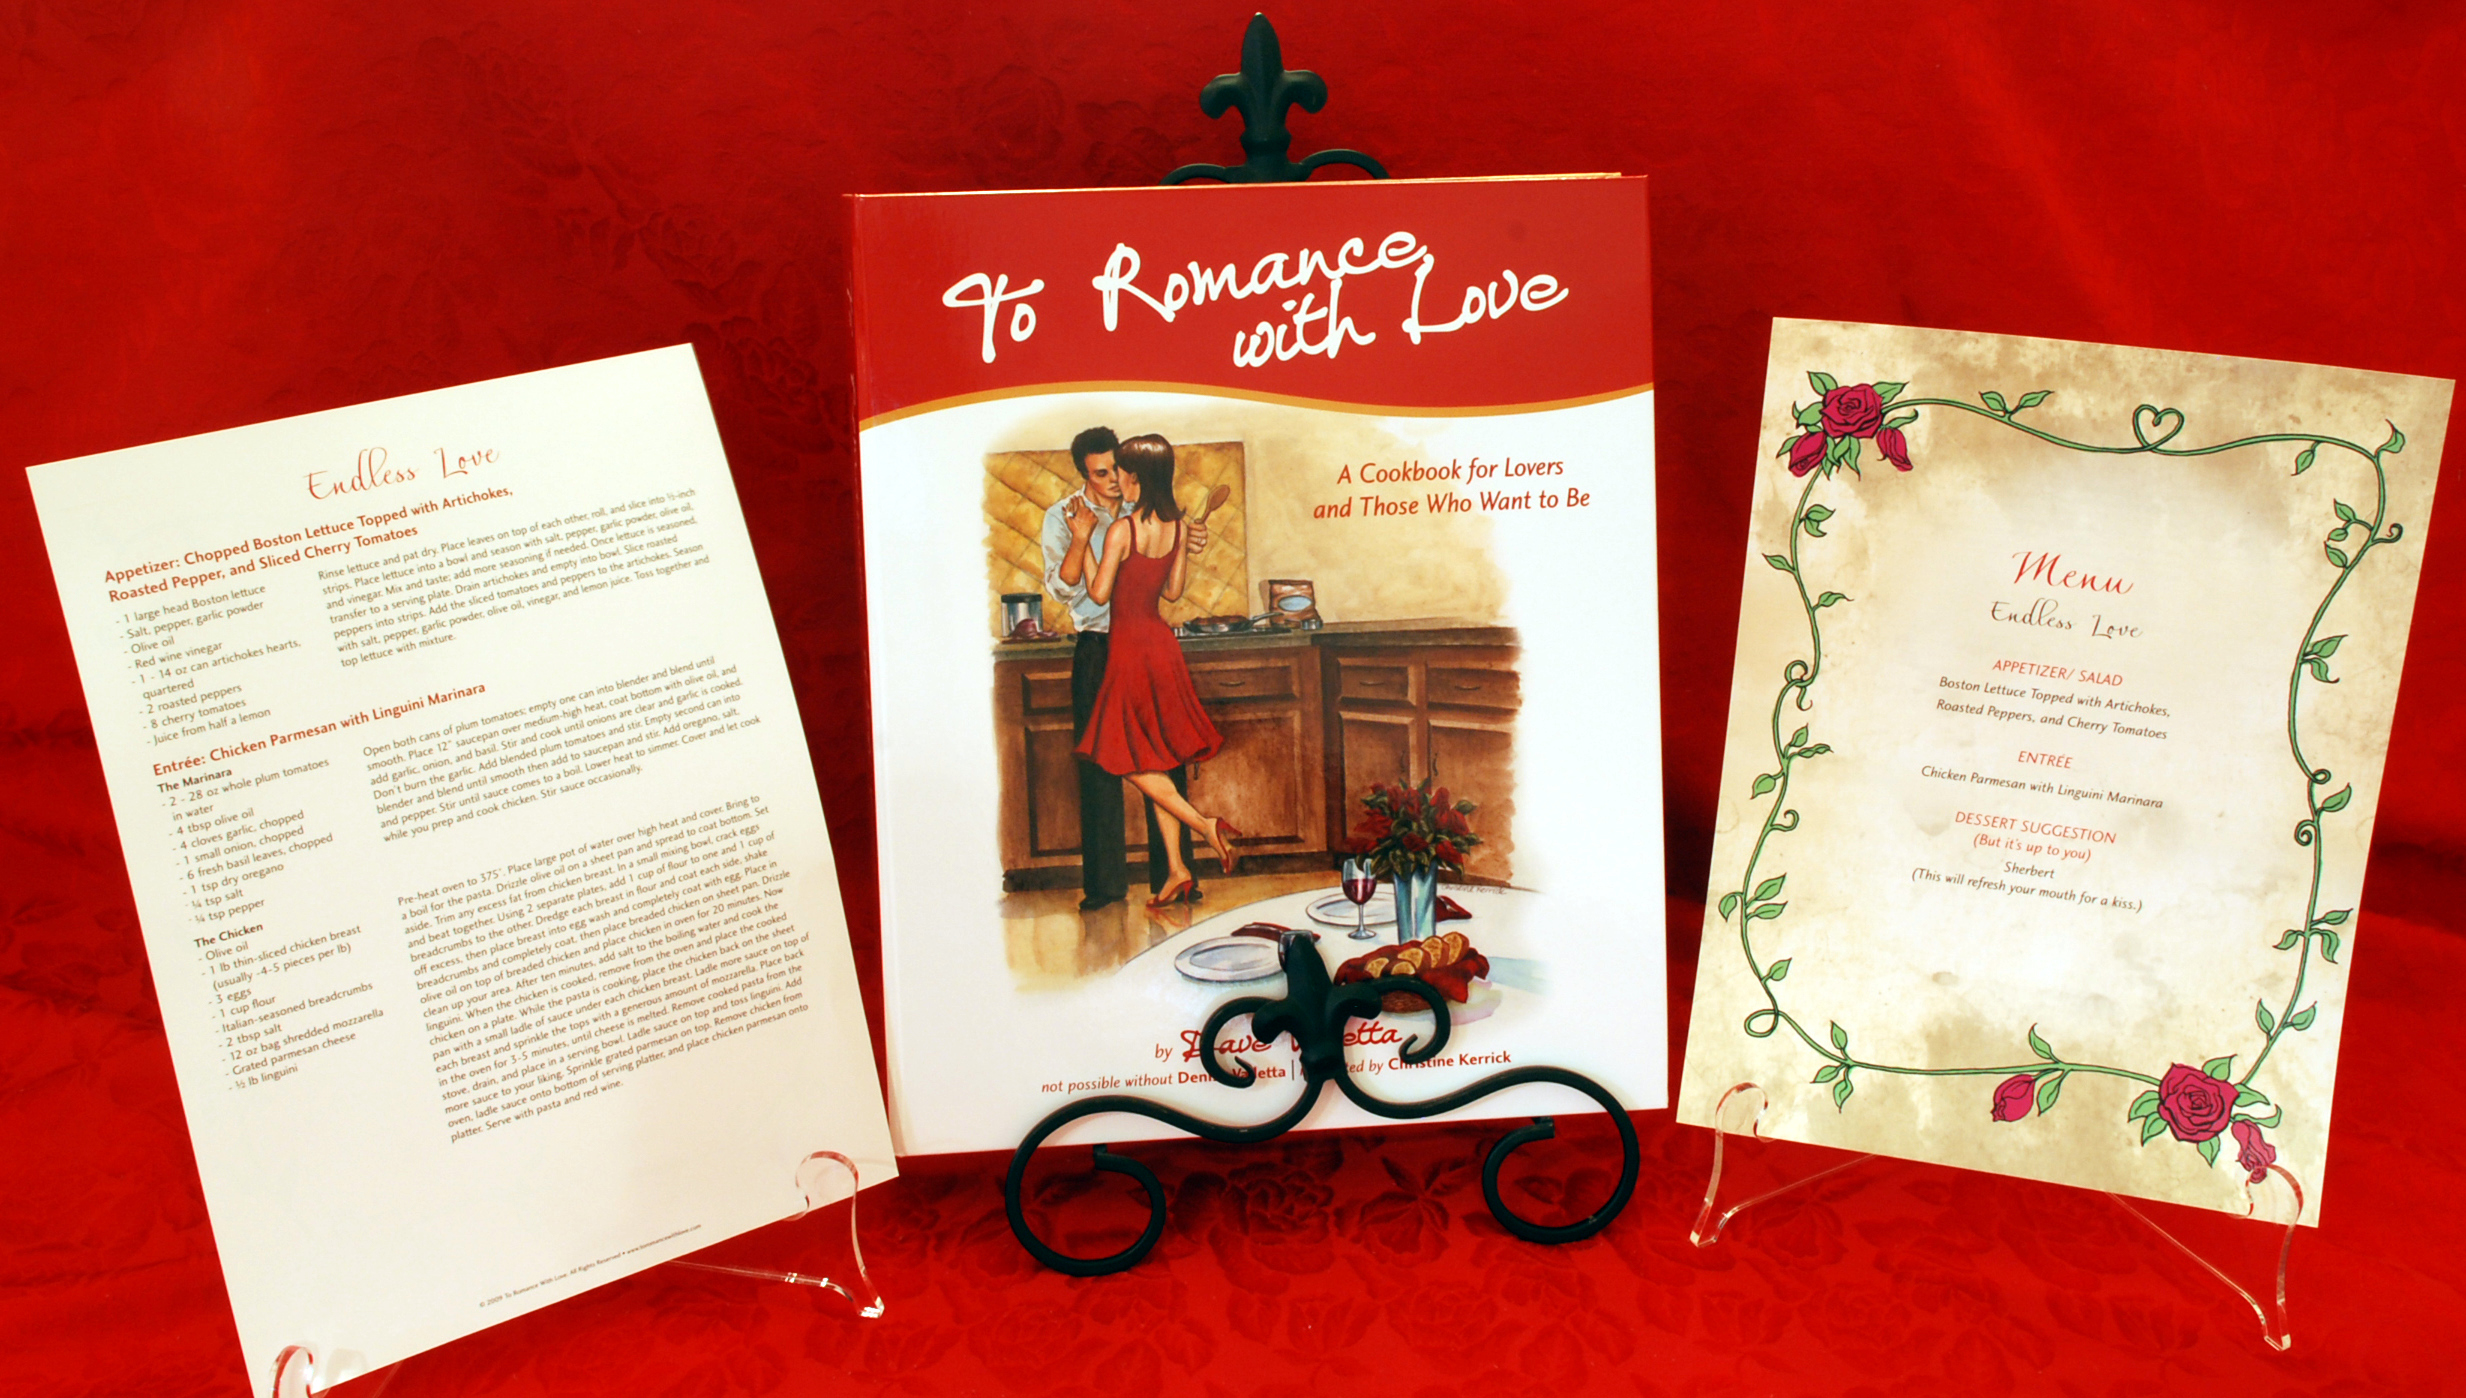 To Romance With Love : A Cookbook for Lovers and Those Who Want To Be